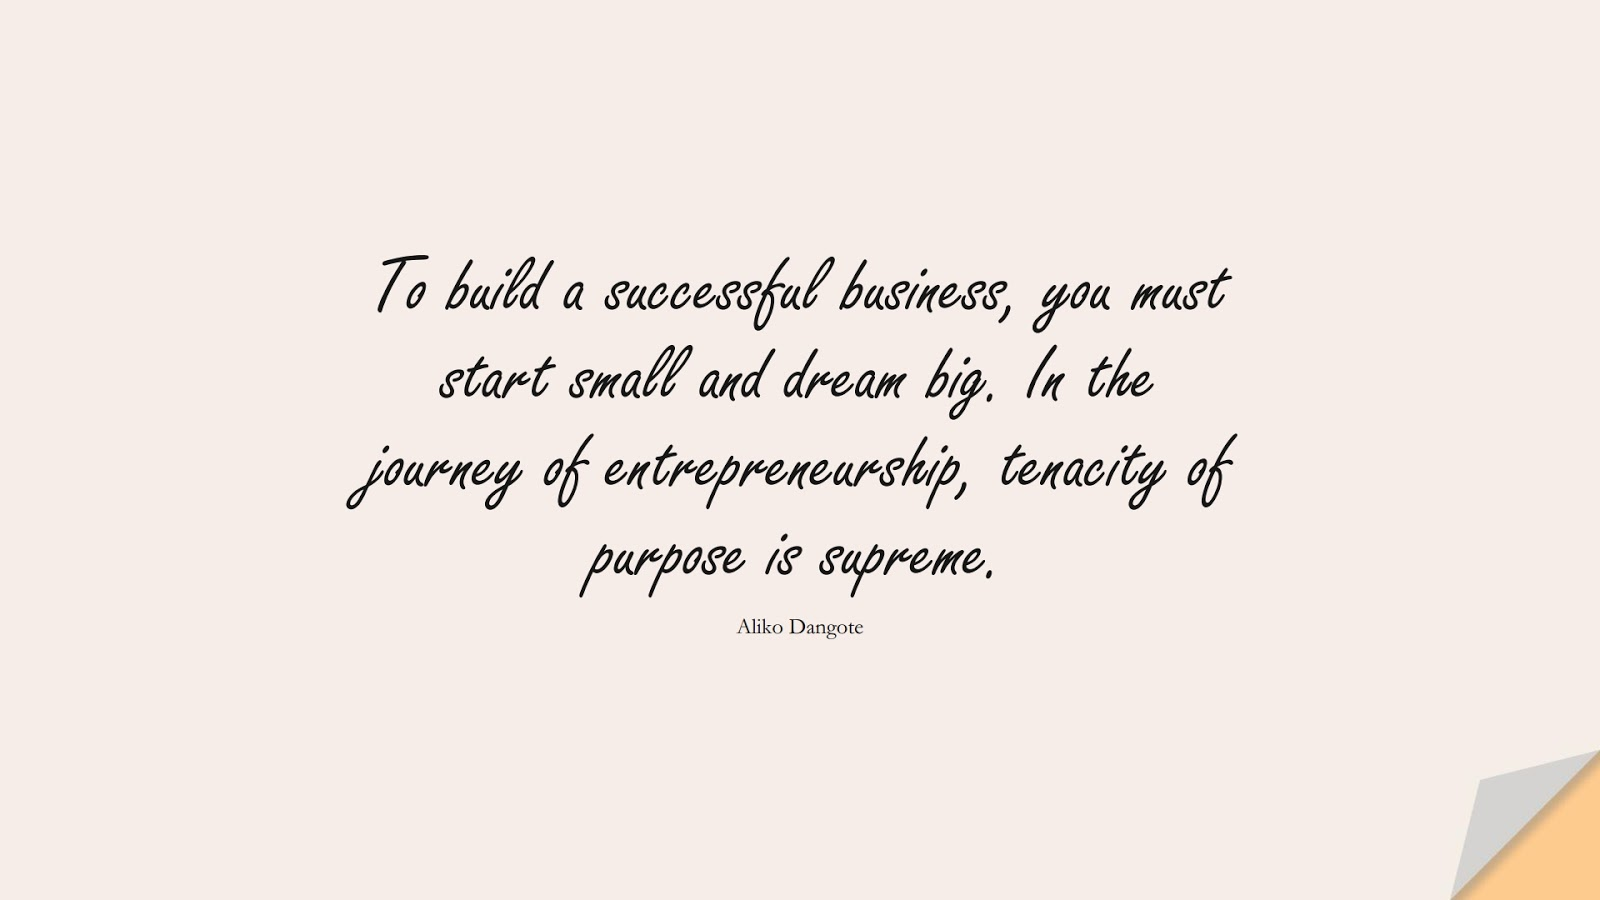 To build a successful business, you must start small and dream big. In the journey of entrepreneurship, tenacity of purpose is supreme. (Aliko Dangote);  #PositiveQuotes